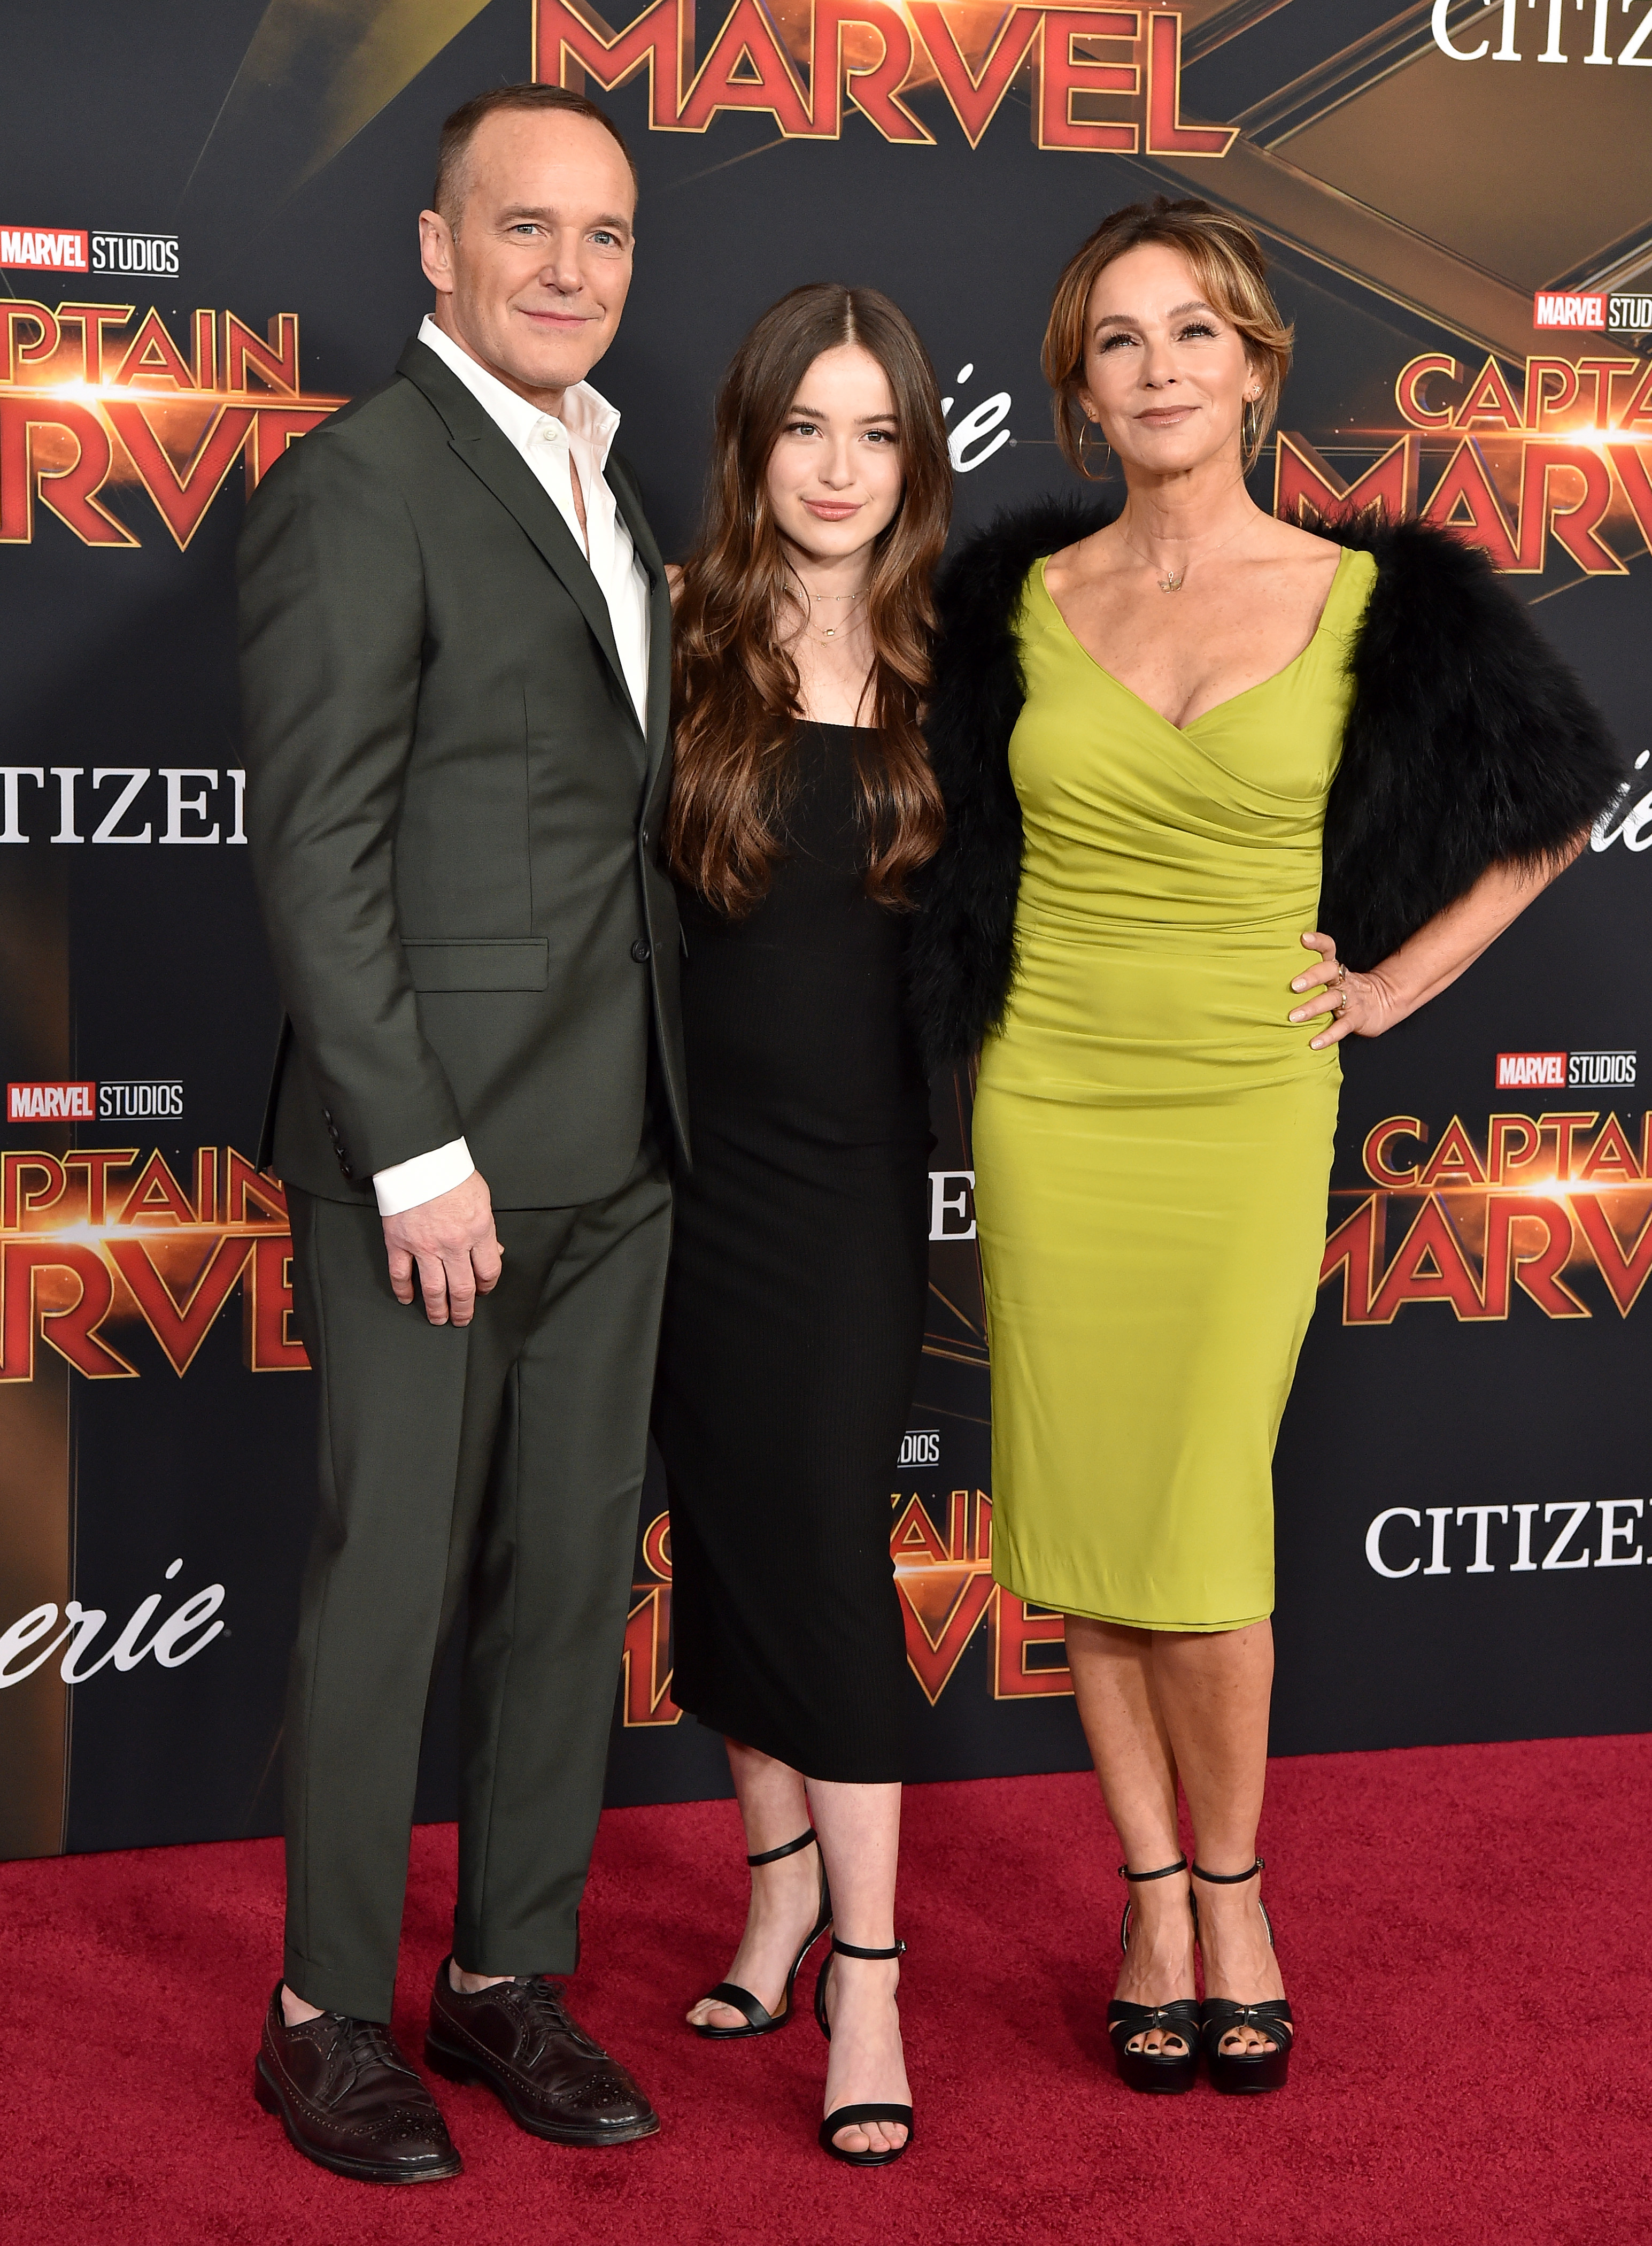 Clark Gregg, Jennifer Grey and daughter Stella attend Captain Marvel premiere in 2019 in Hollywood, California.